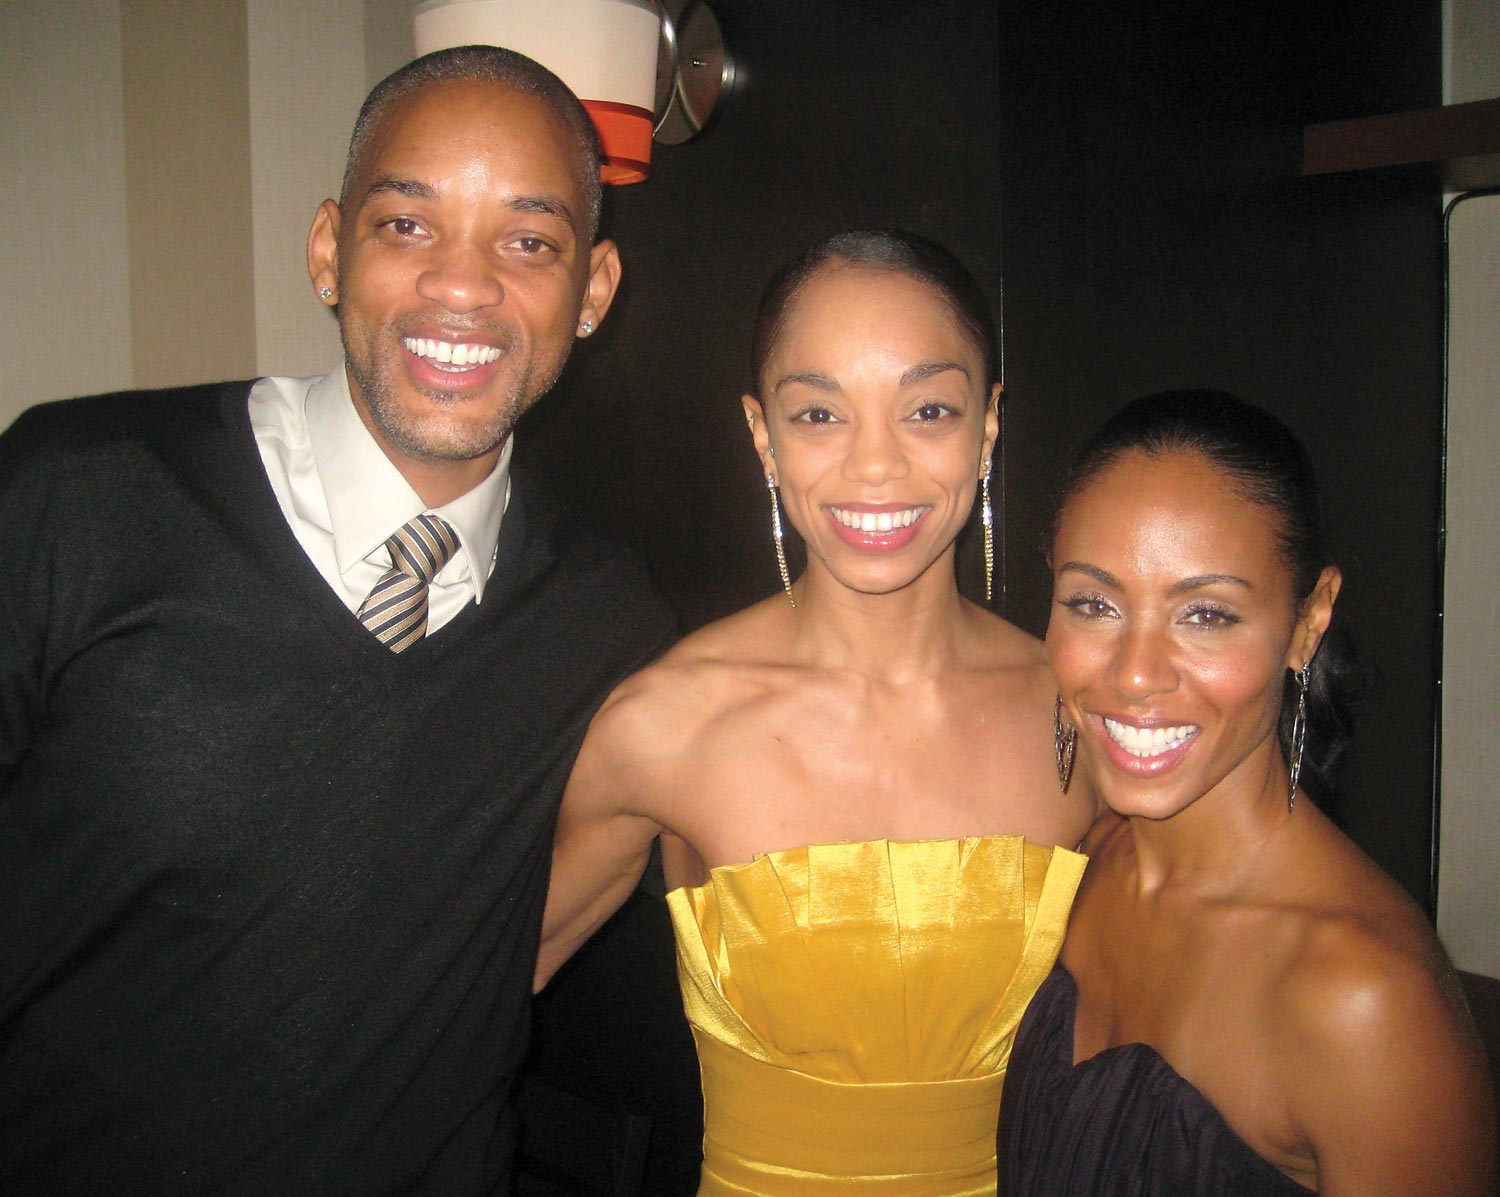 Nicole de Weever (centre) with actor Will Smith (left) and co-producer Jada Pinkett Smith at the grand opening of Fela. Photograph courtesy Nicole de Weever